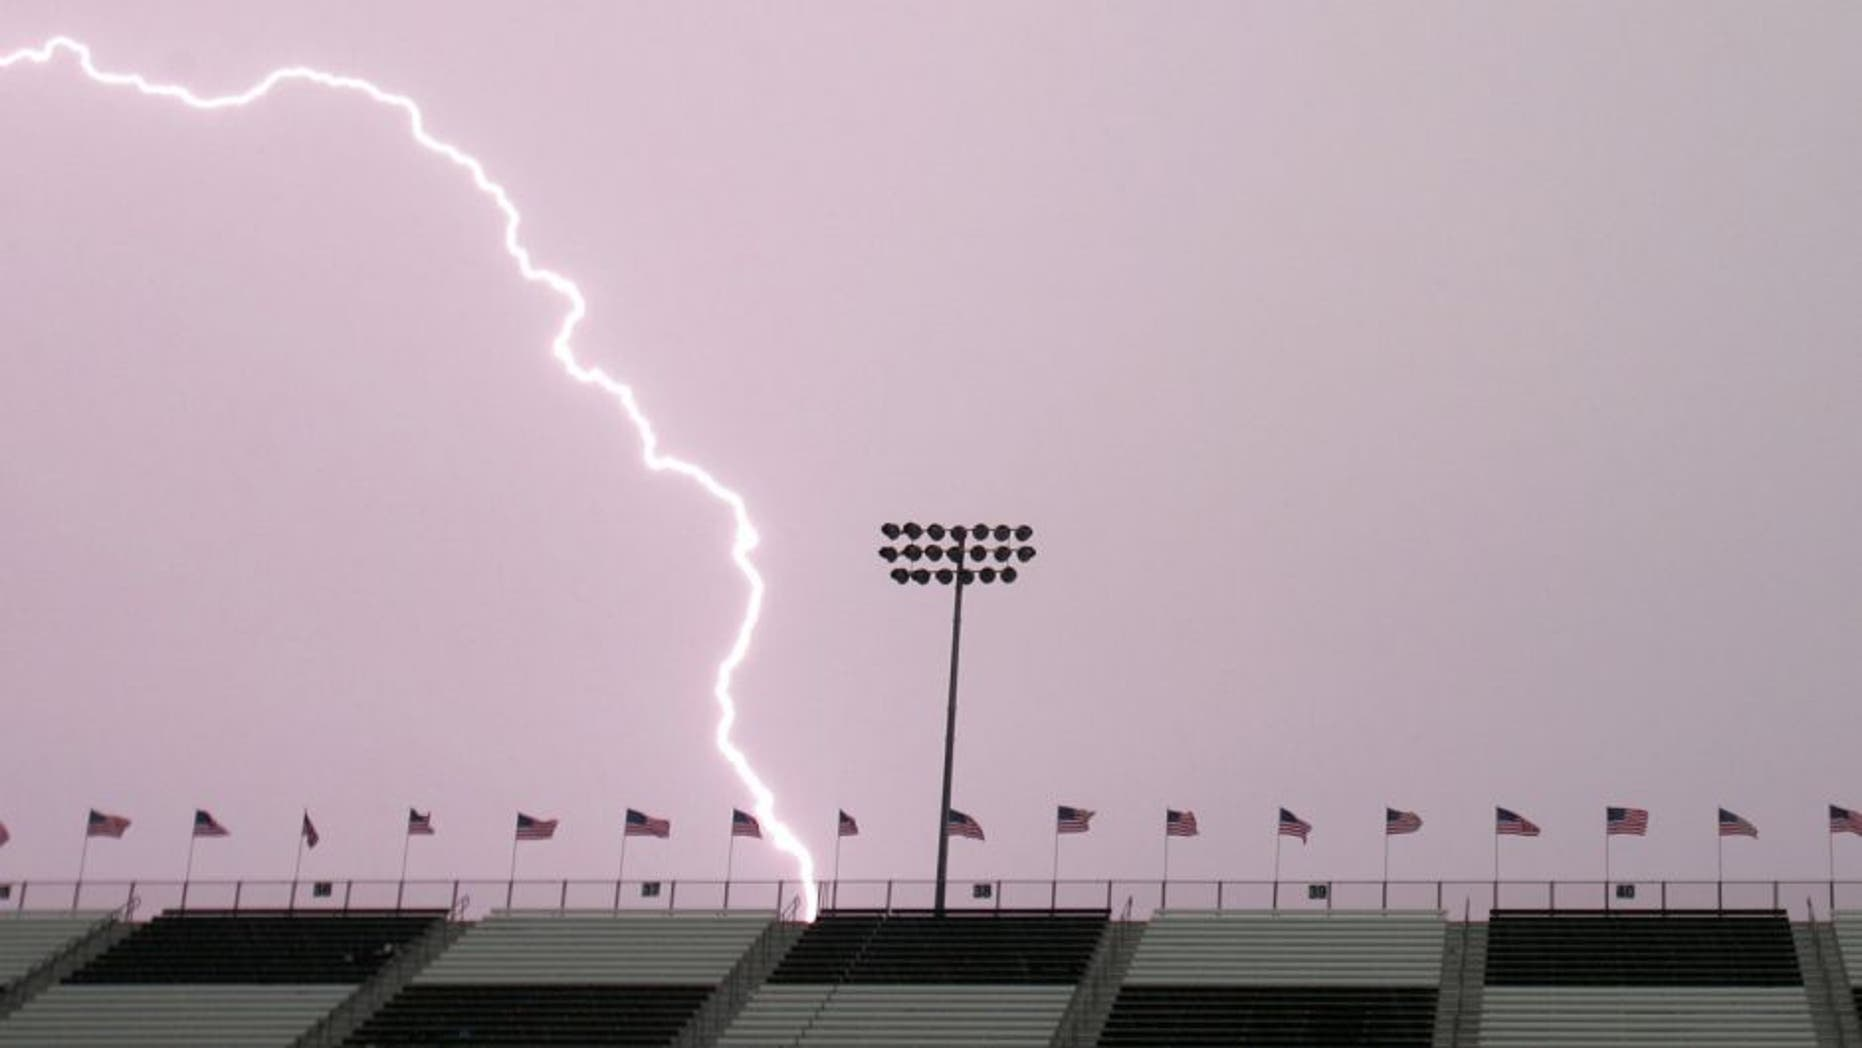 MADISON, IL - JULY 29: Lightning hits behind the front stretch grandstands during a thunderstorm before the start of the NASCAR Busch Series Busch Silver Celebration 250 presented by Shop 'n Save on July 29, 2006 at the Gateway International Raceway in Madison, Illinois. (Photo by Robert Laberge/Getty Images for NASCAR)